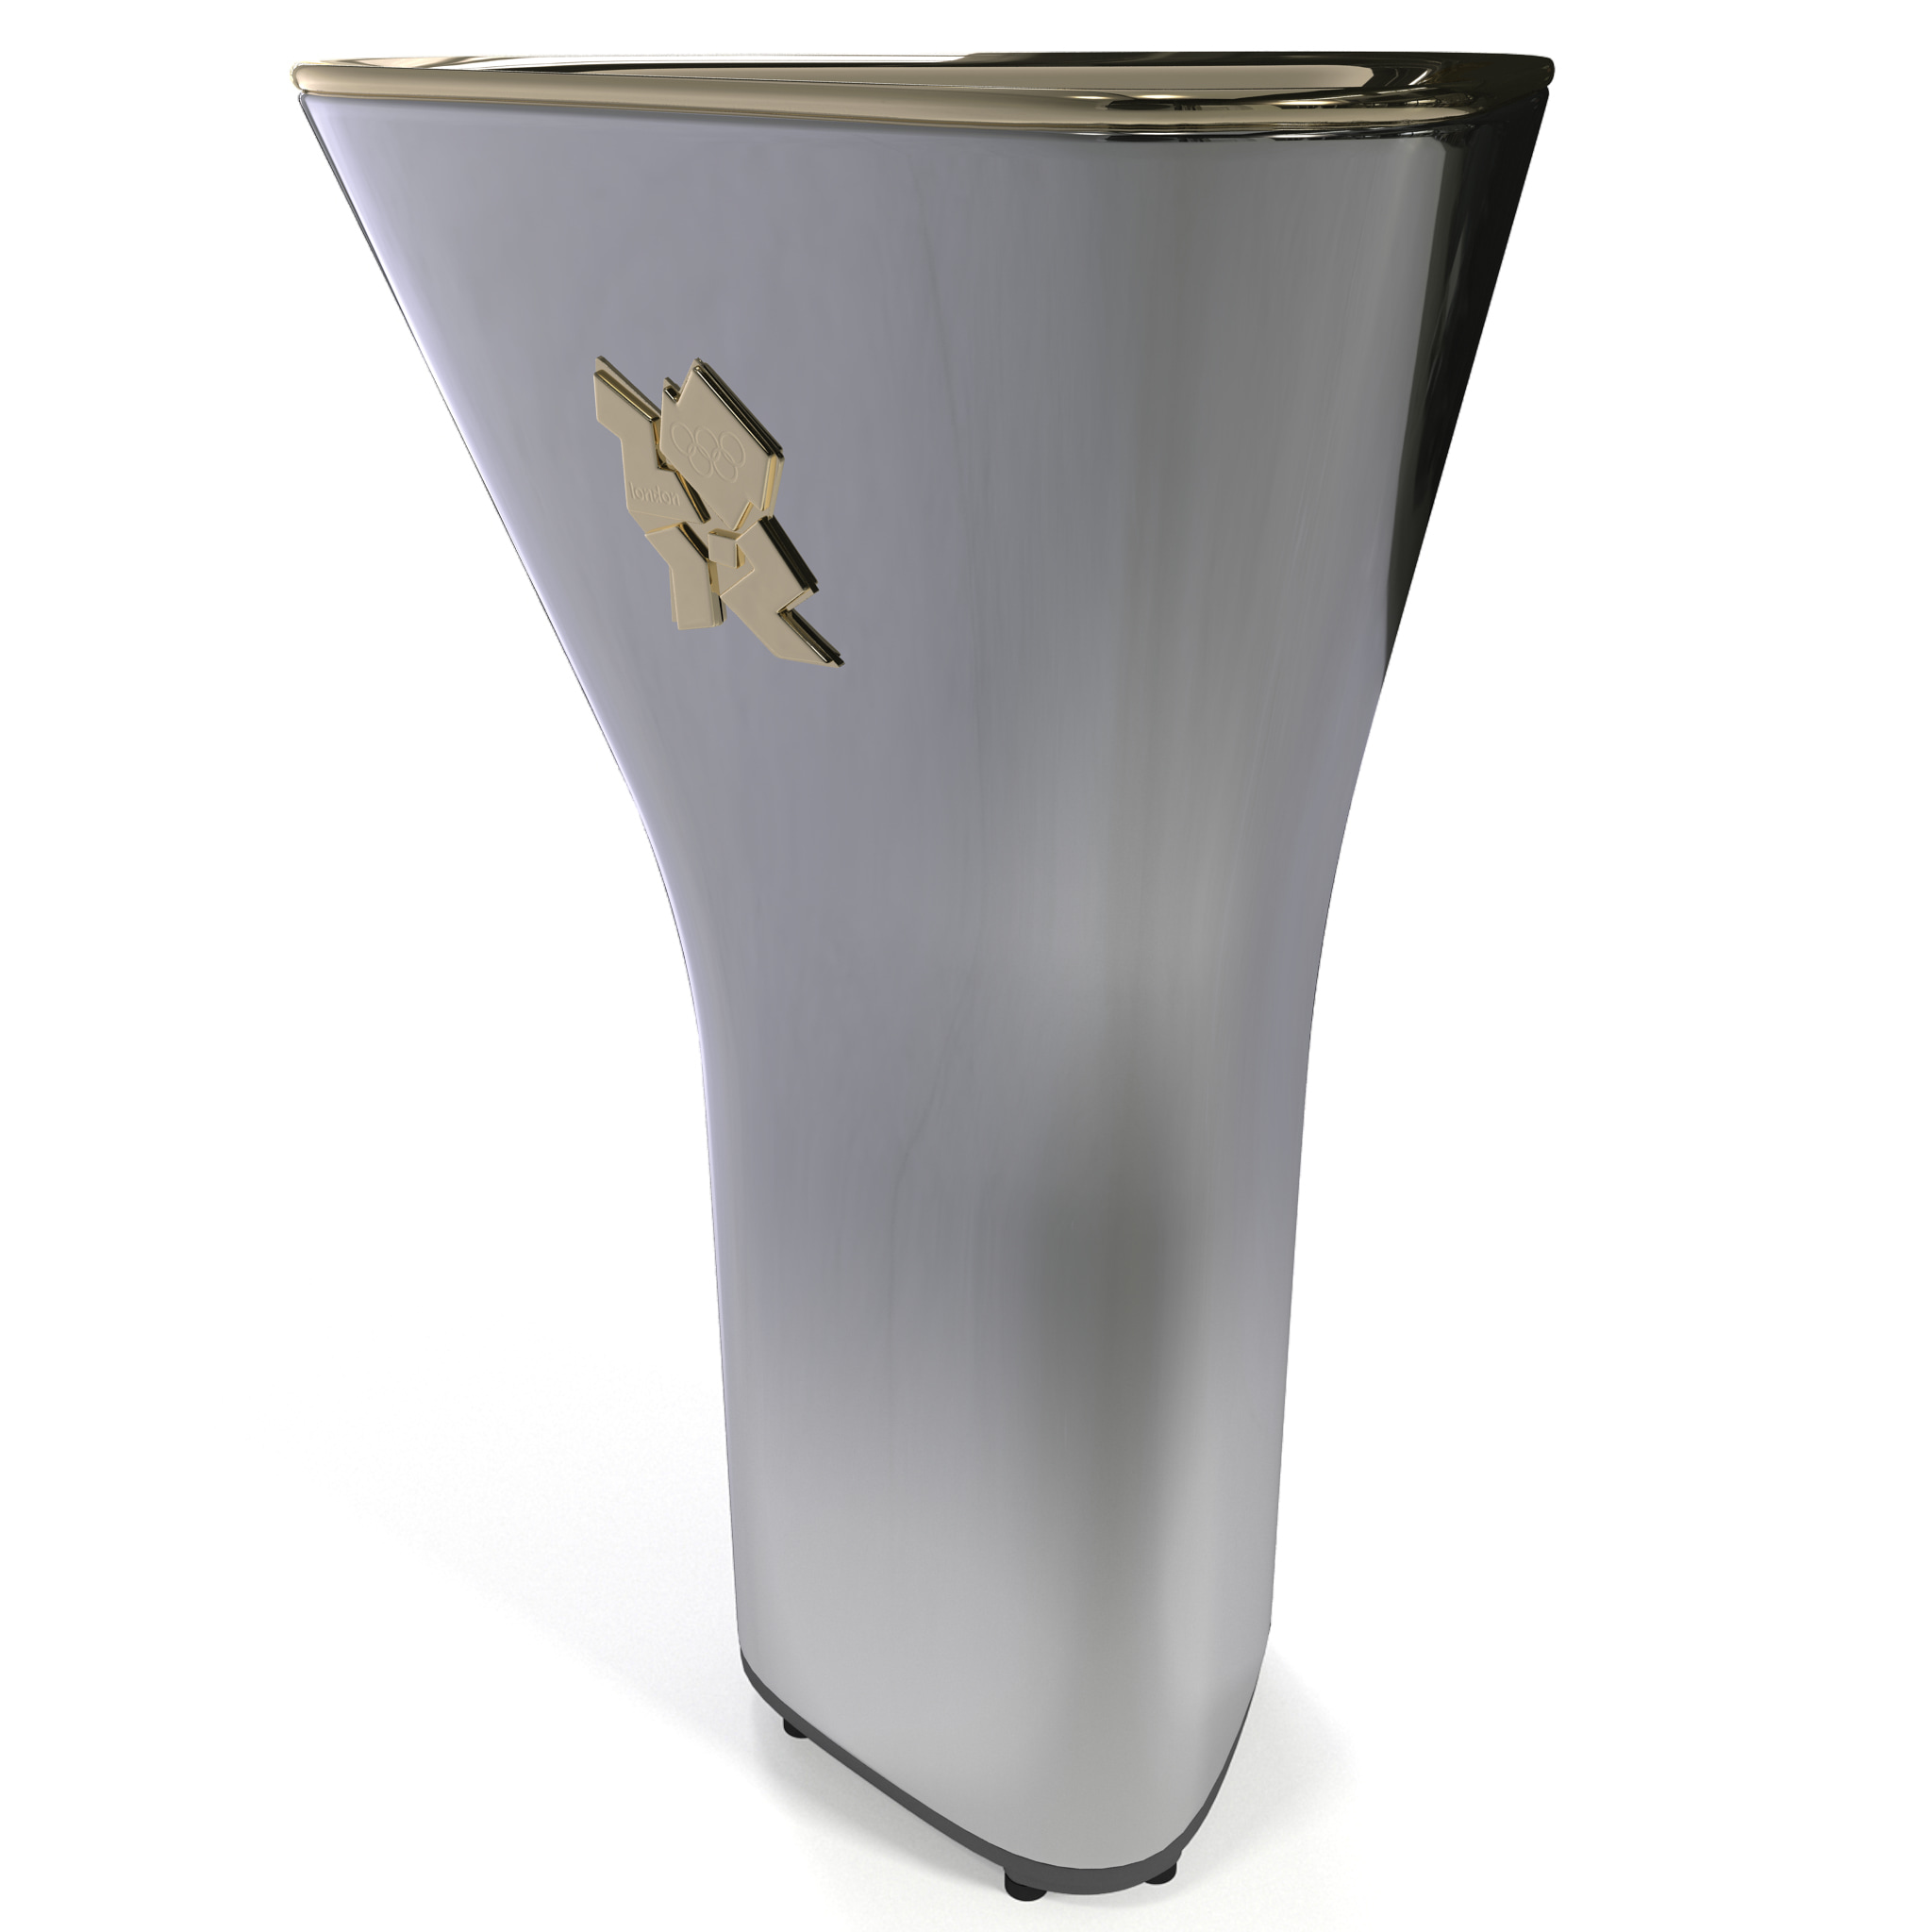 Olympic Torch Cauldron_2.jpg